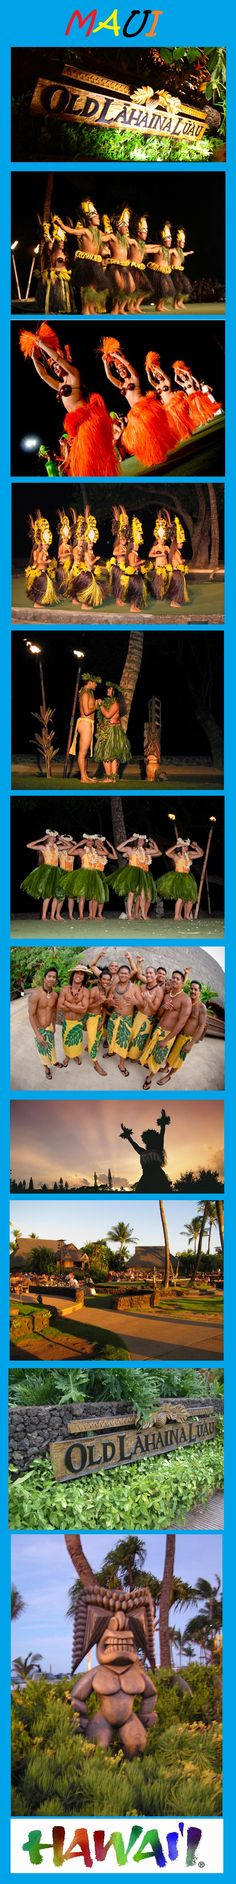 #Maui  ..... Old Lahaina Luau !  .... so much fun.... great food and entertainment!!!